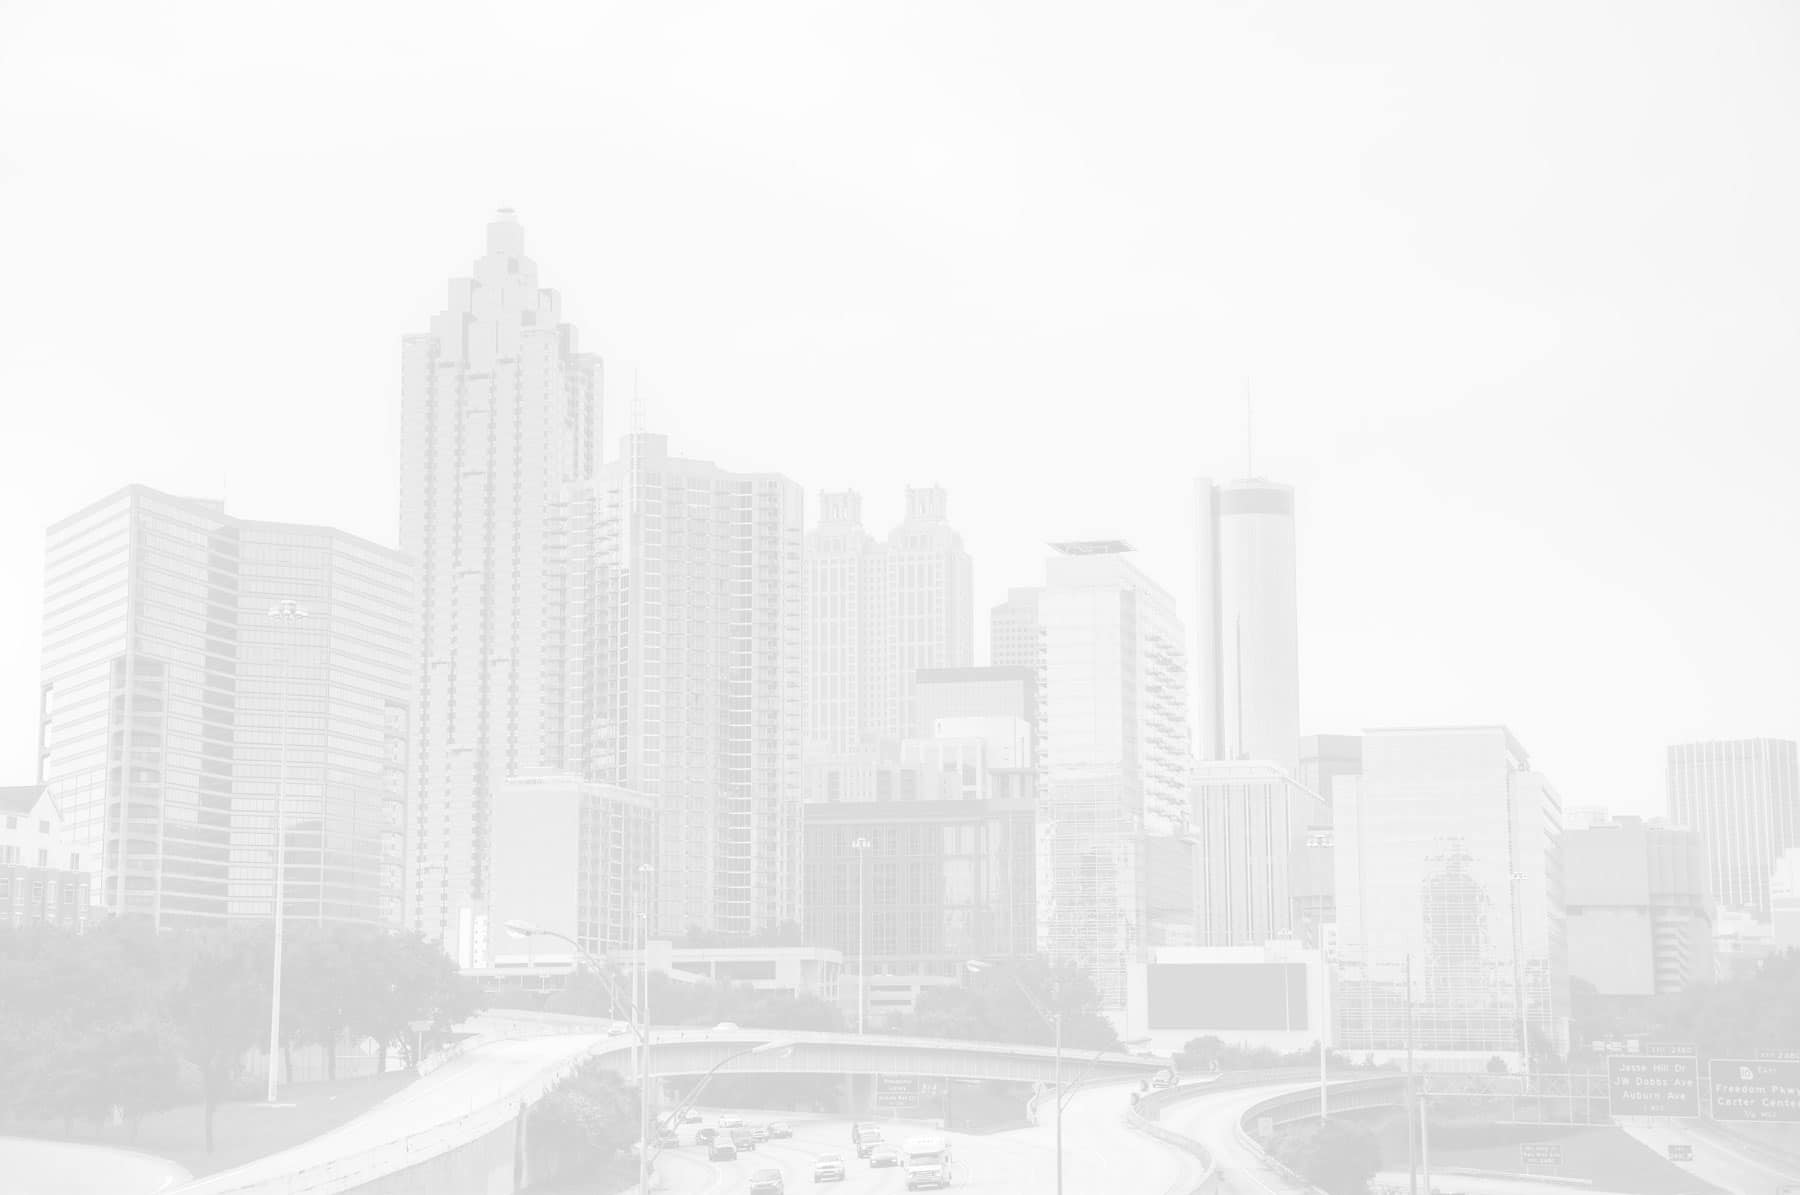 atlanta's skyline from the highway, white-washed